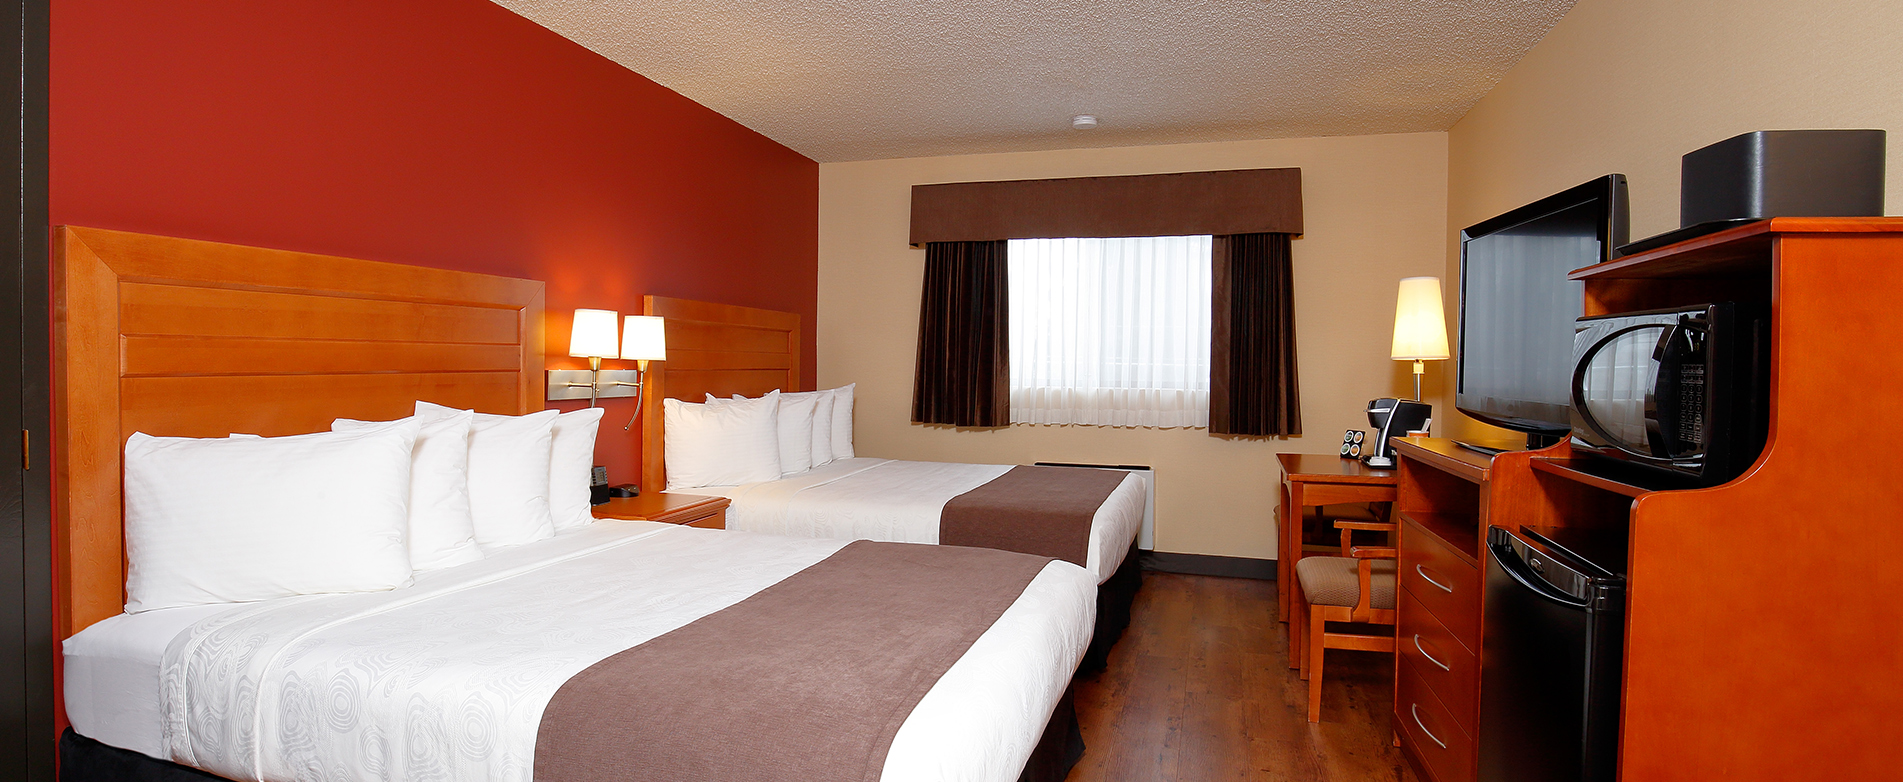 Saskatoon hotel rooms and accomodations